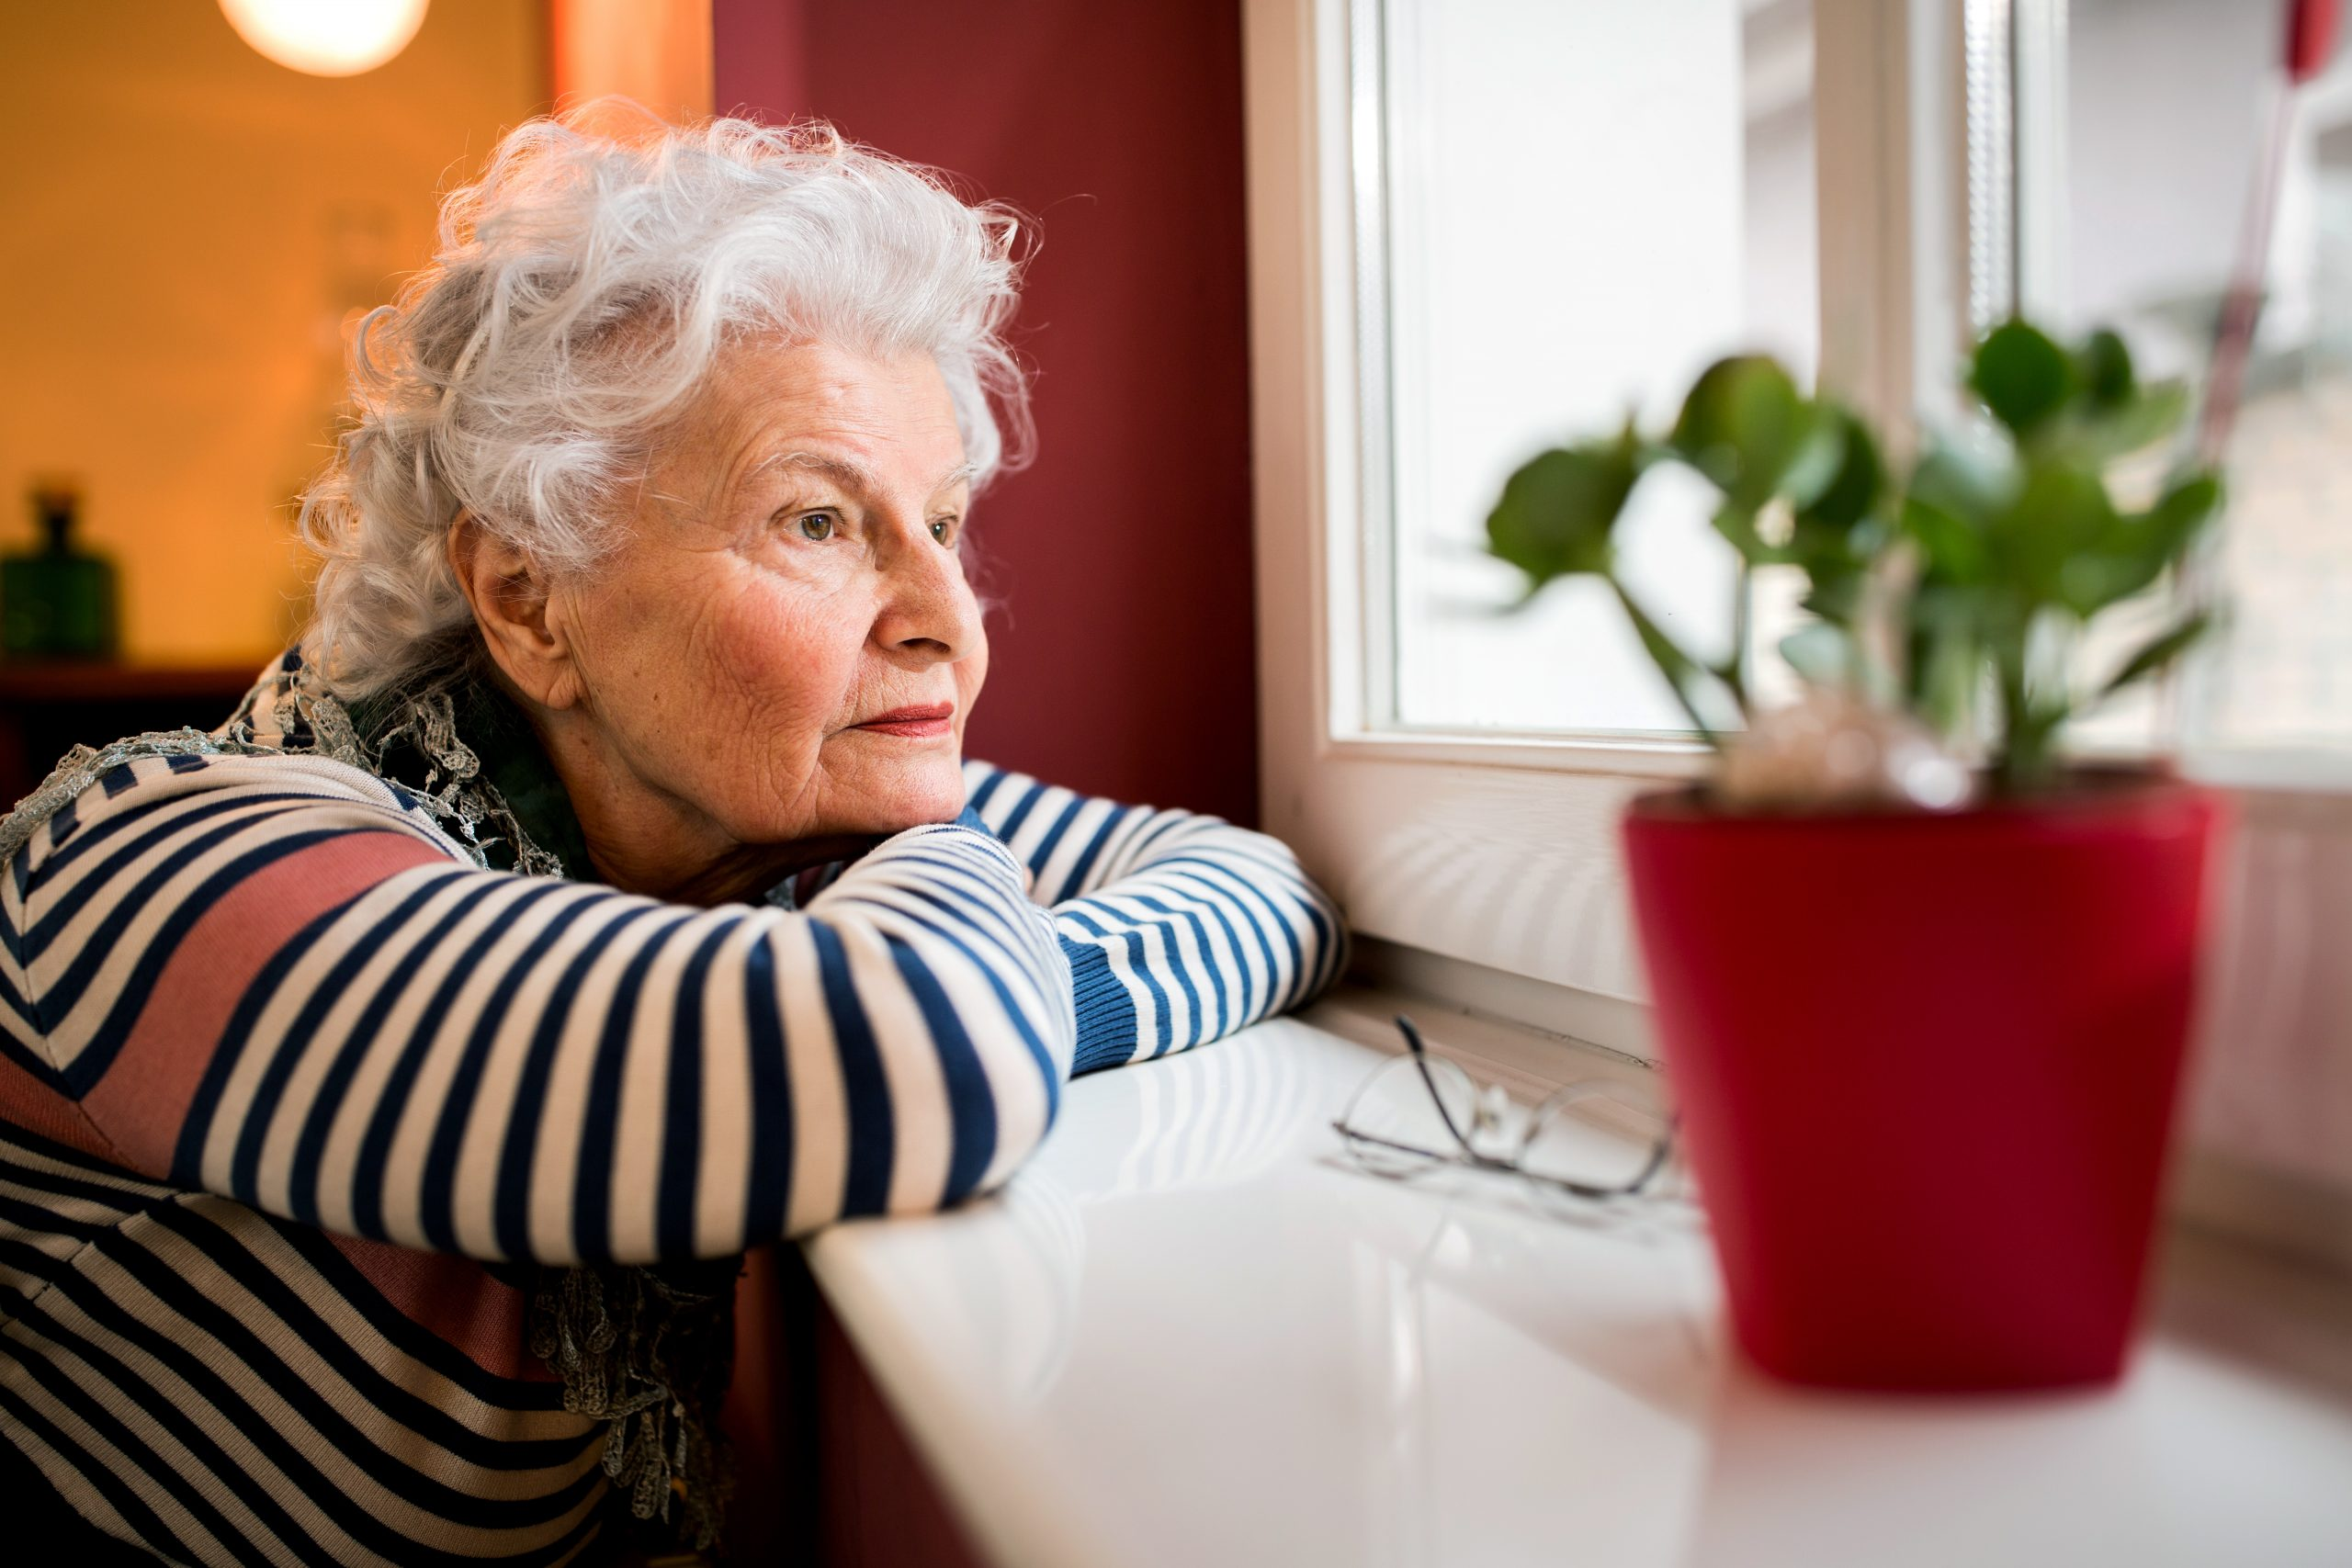 Sad alone senior woman looking through window at home